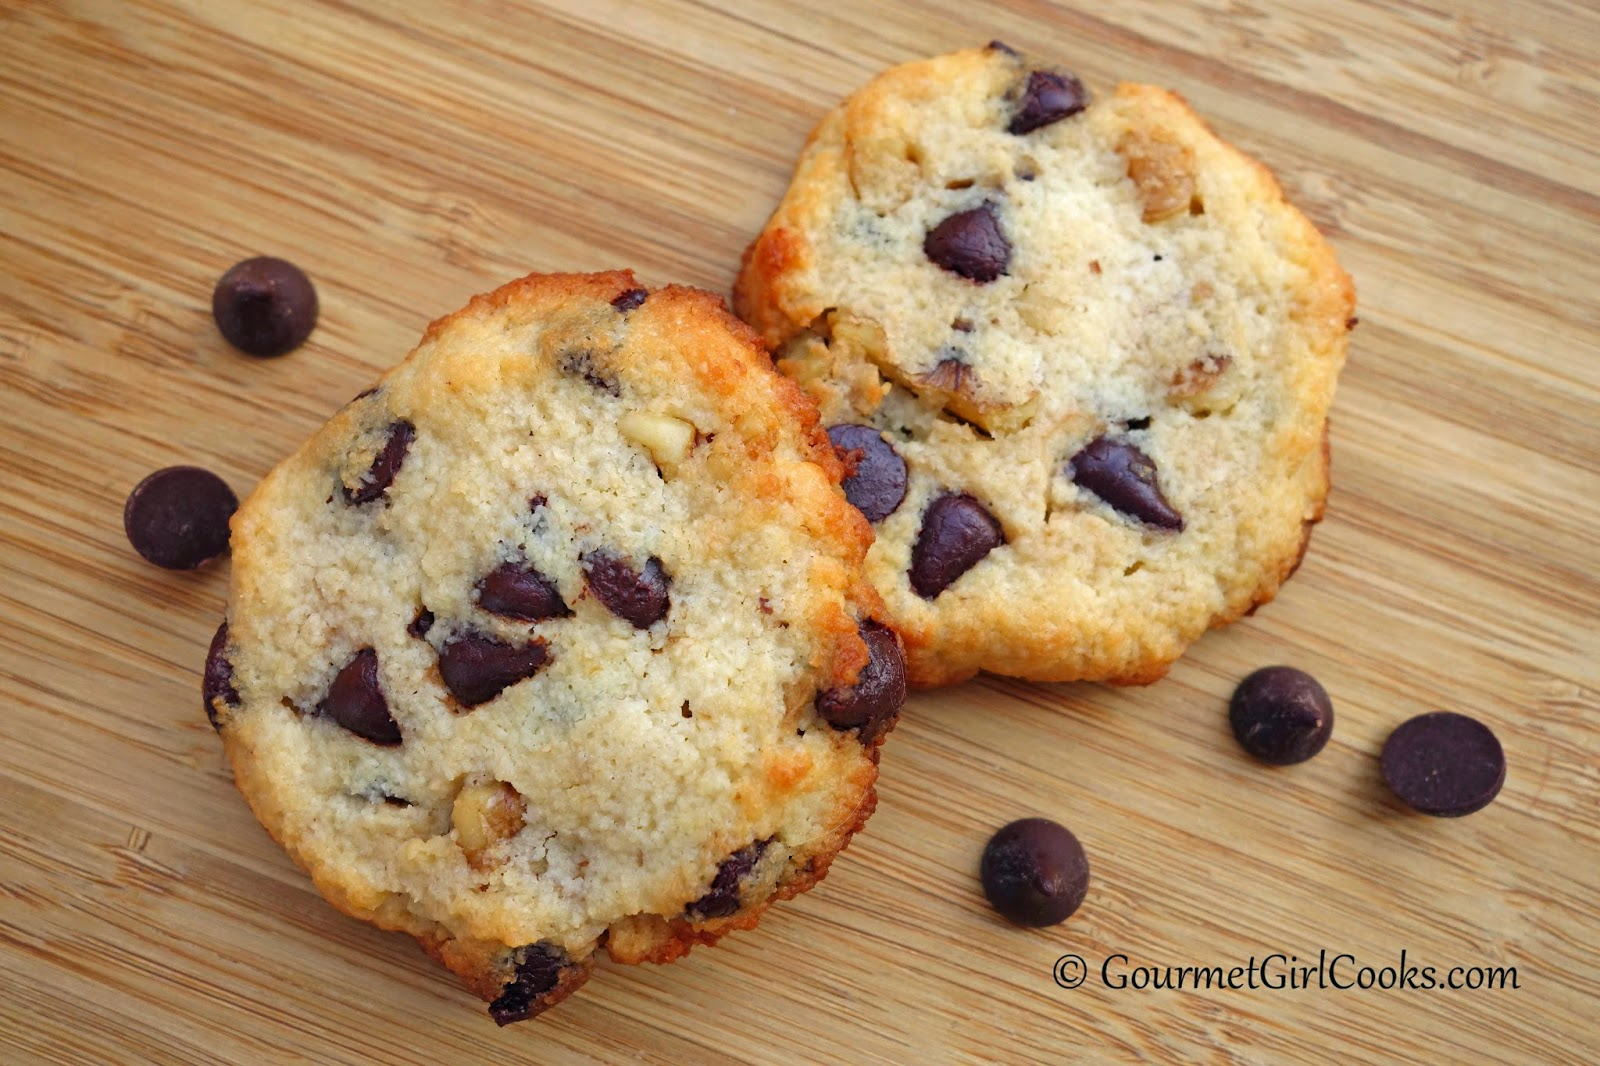 Gourmet Girl Cooks: Crispy Style Chocolate Chip Cookies - Low Carb ...